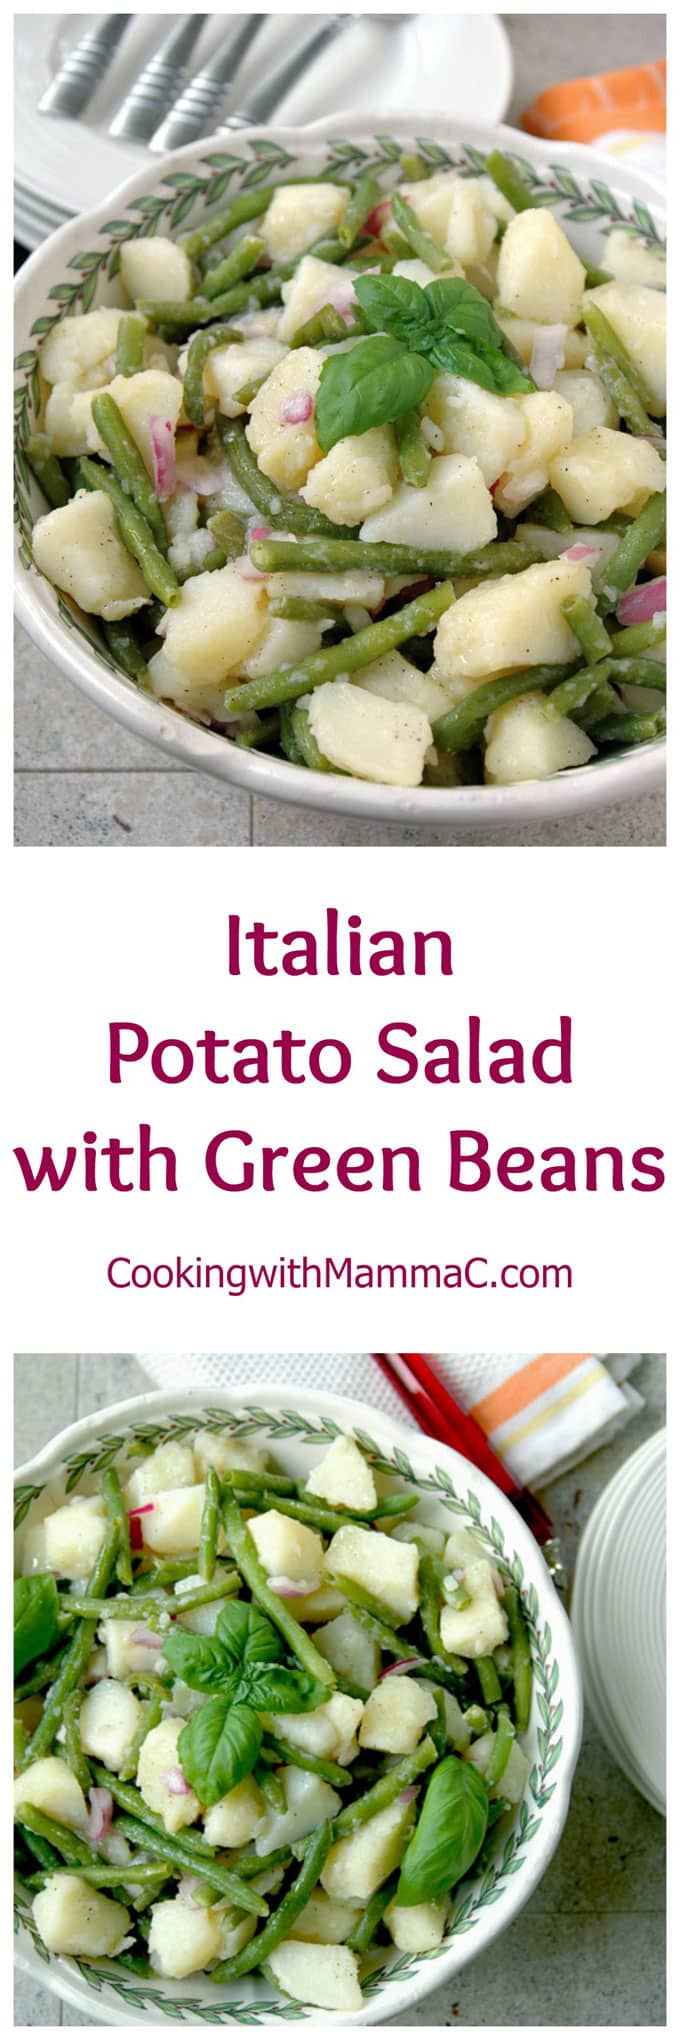 Italian Potato Salad with Green Beans - the best potato salad from Naples! Vegan, gluten free and perfect for your next BBQ or potluck!